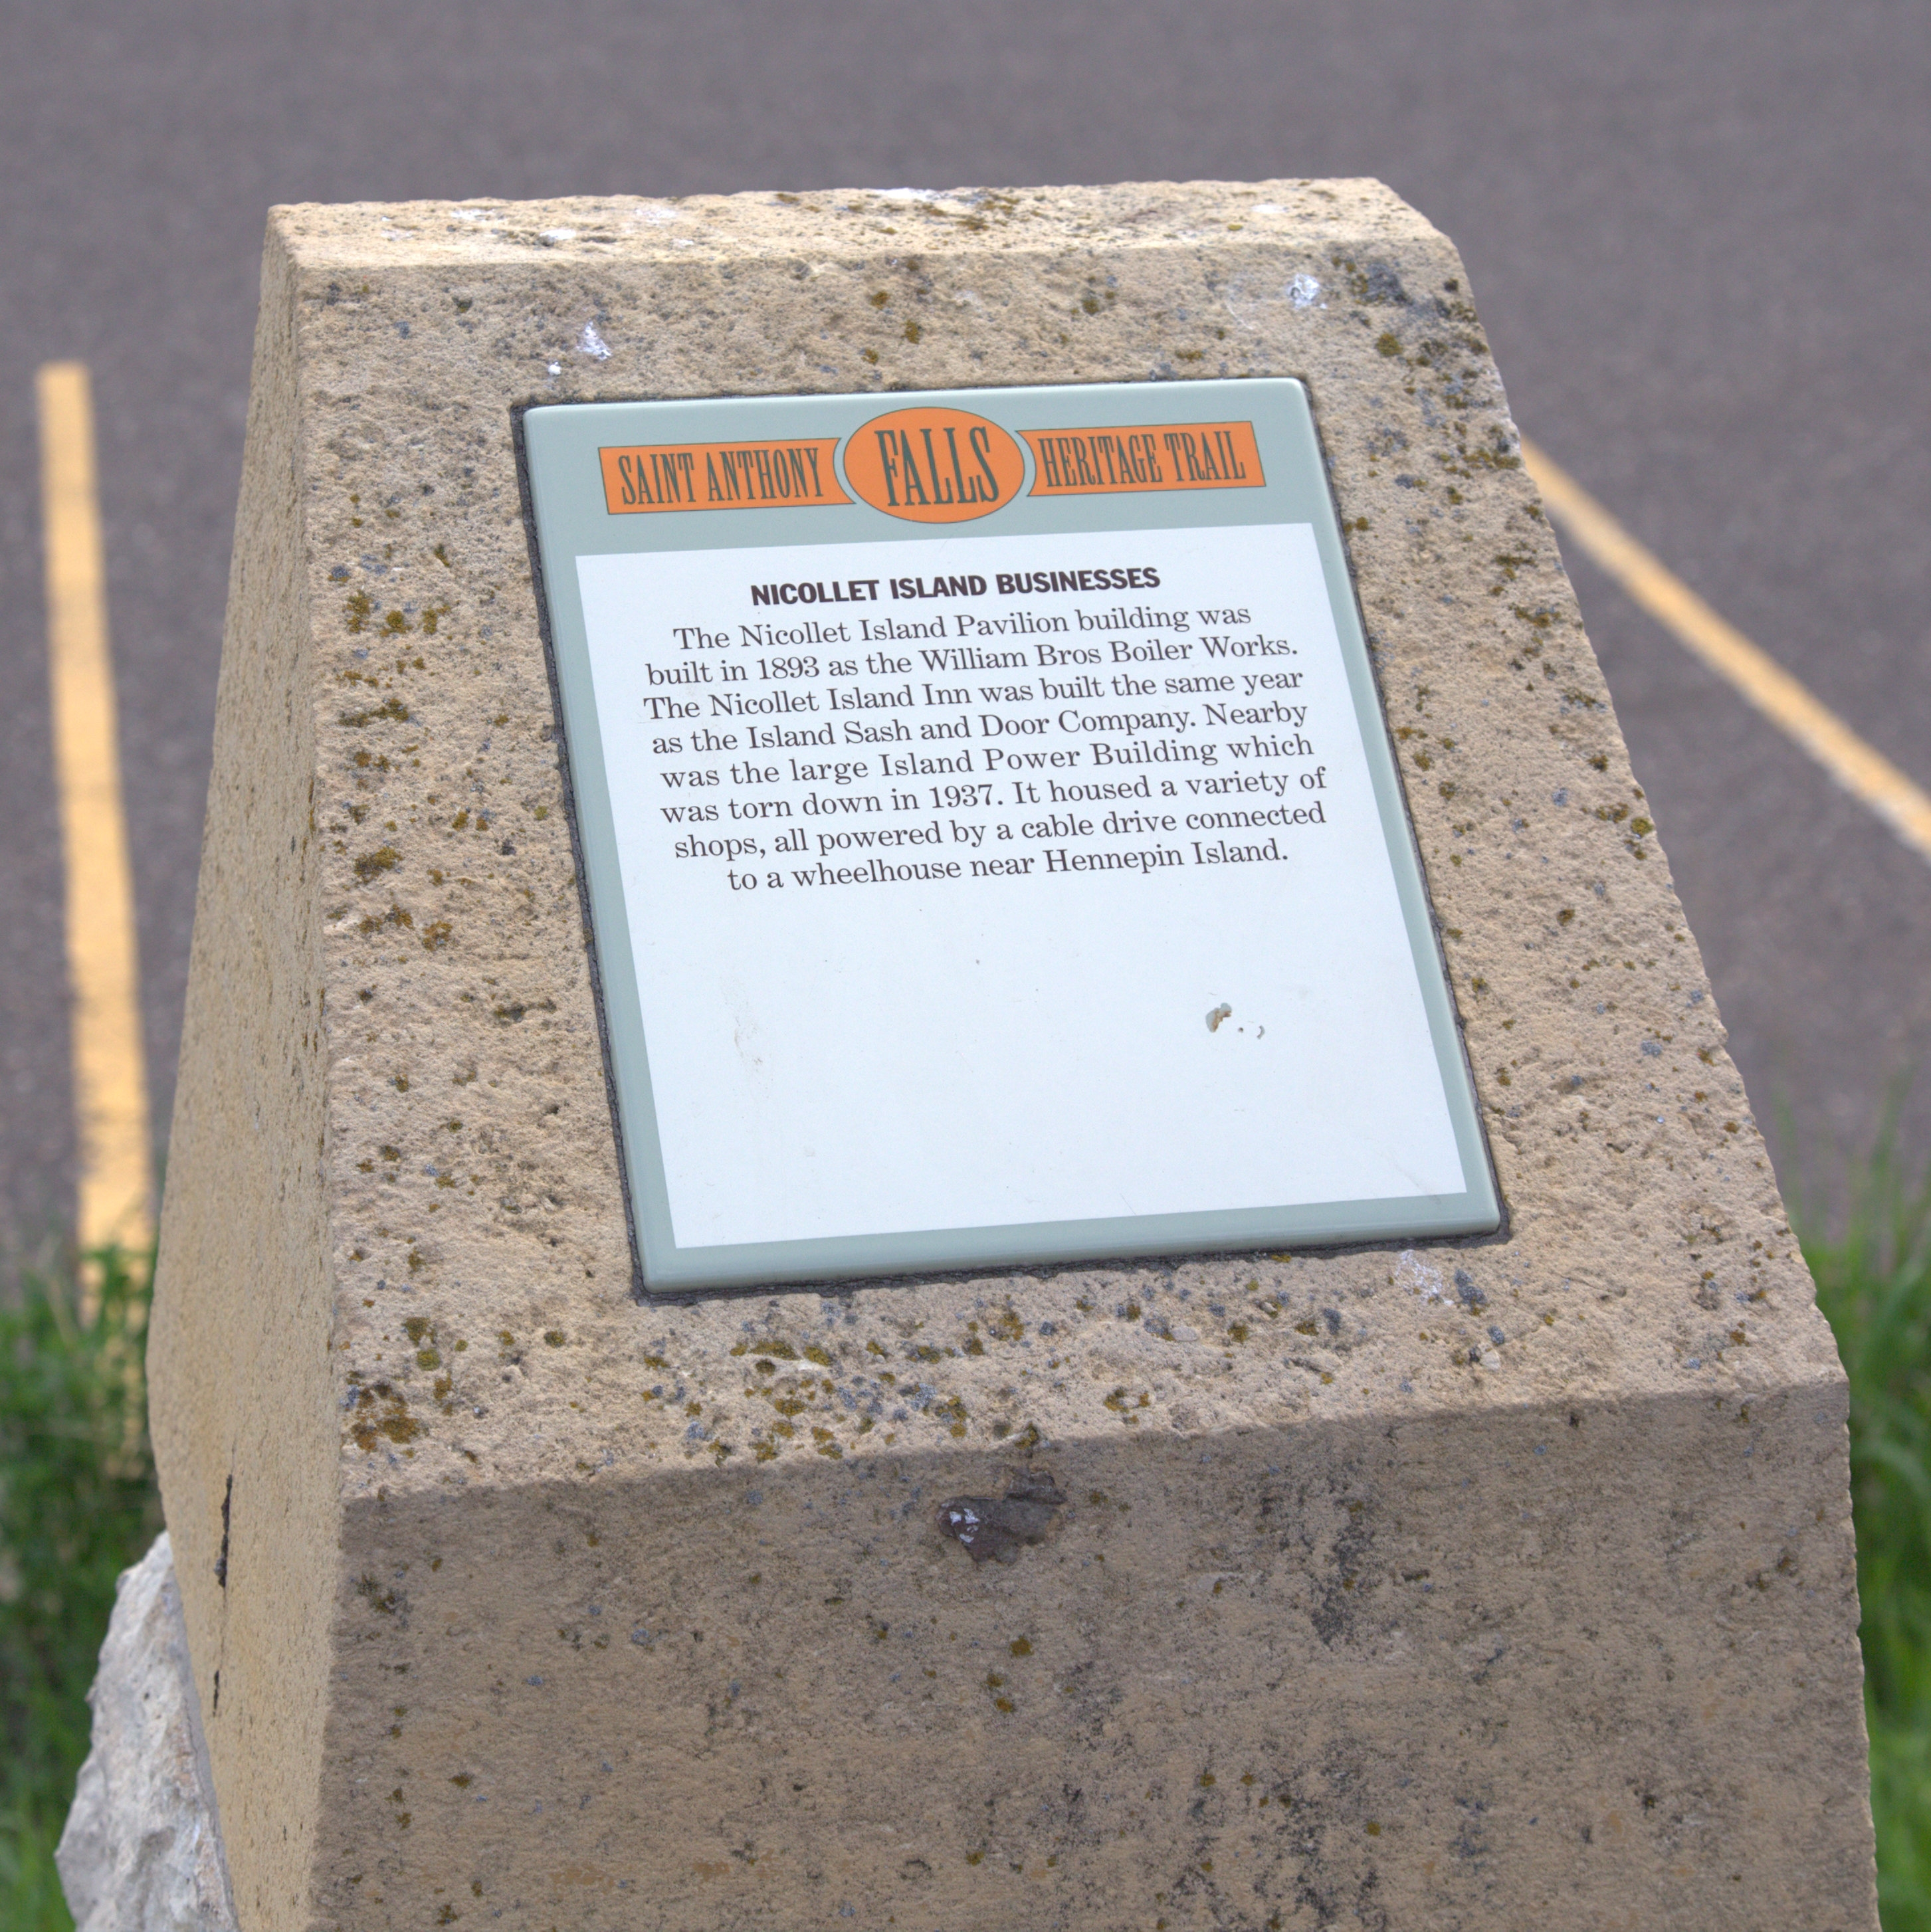 Nicollet Island Businesses Marker